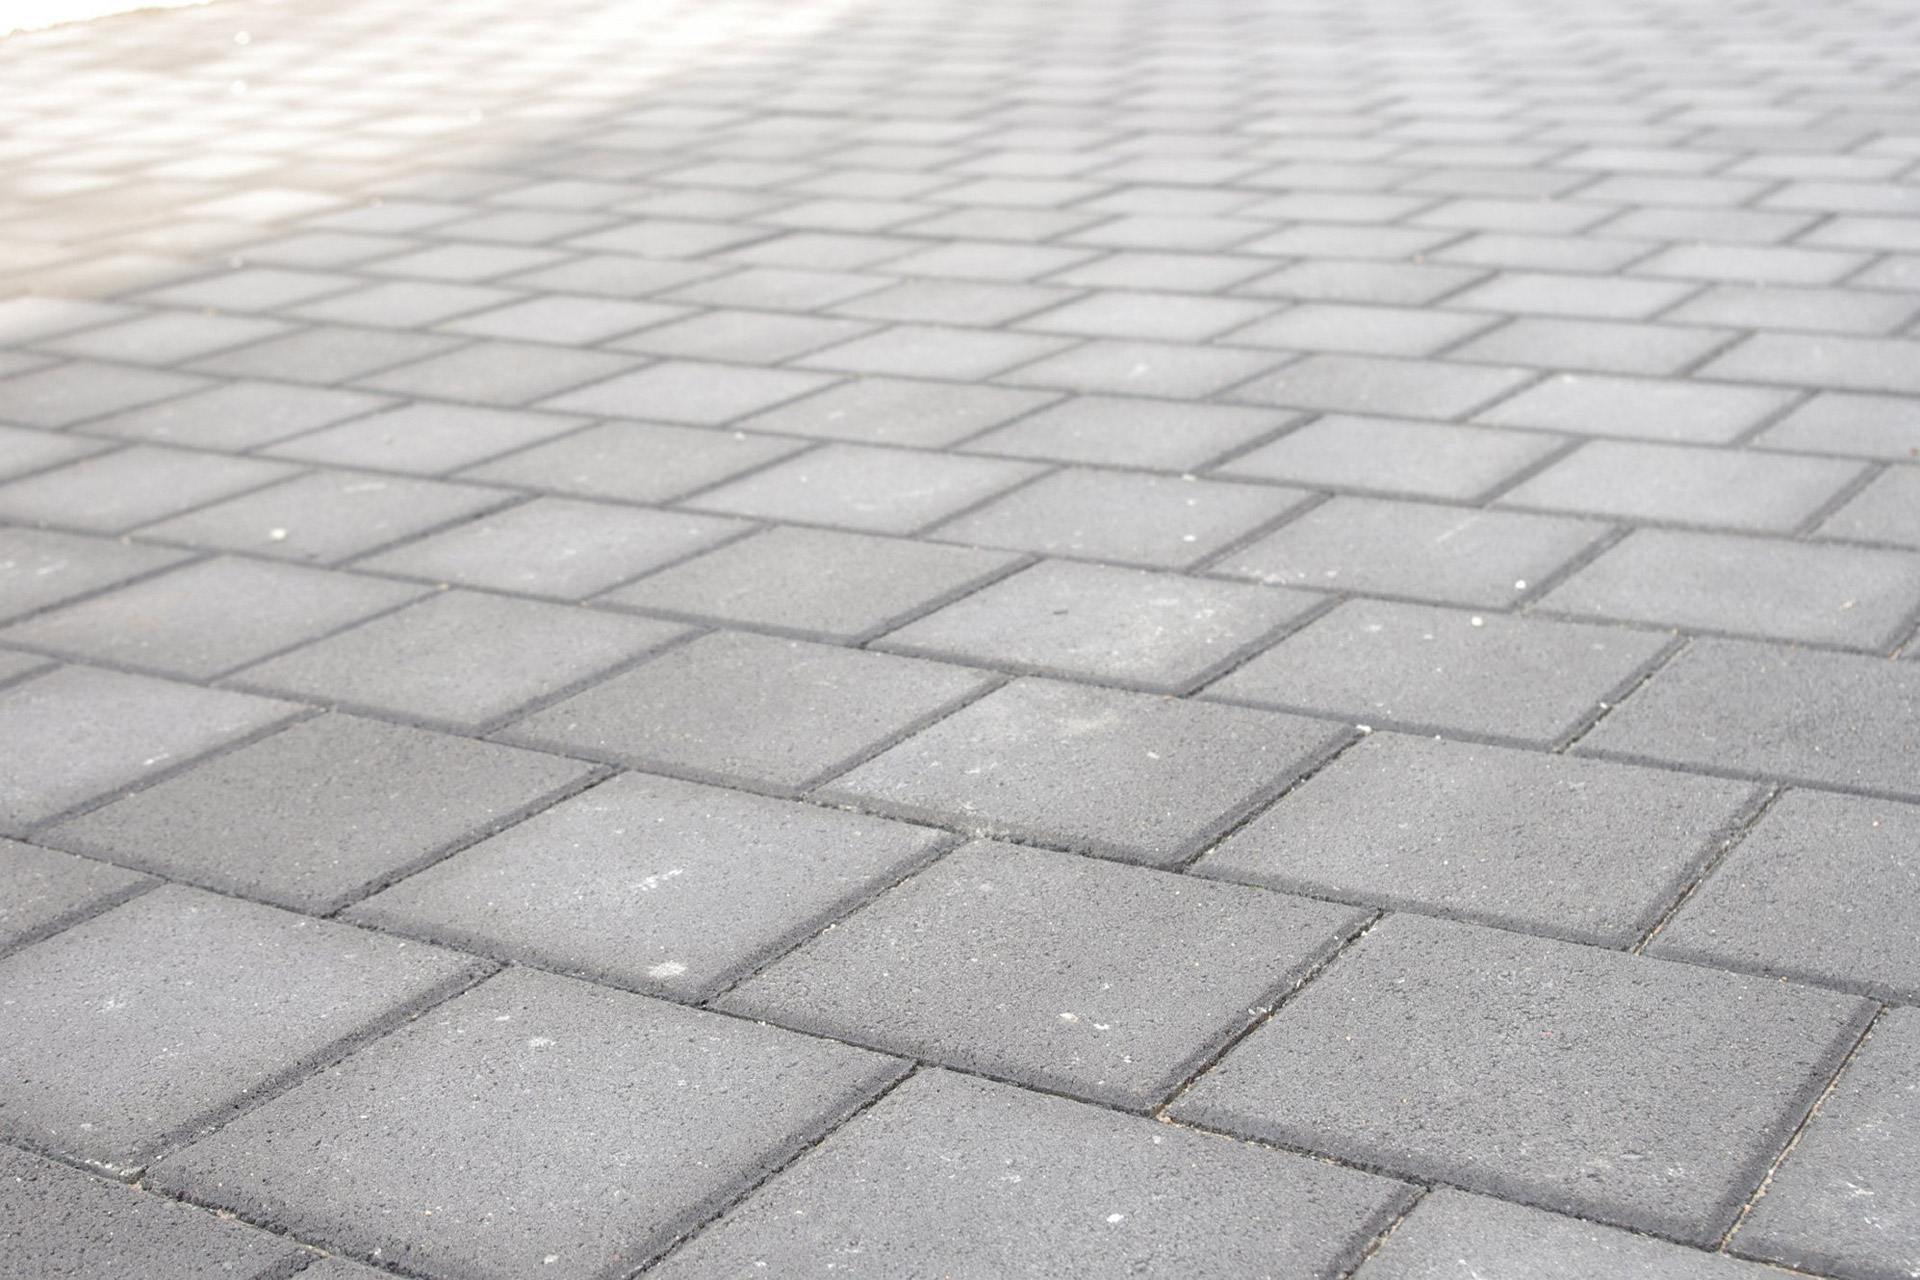 Arena Pflaster Pavement Background Free Stock Photo - Public Domain Pictures